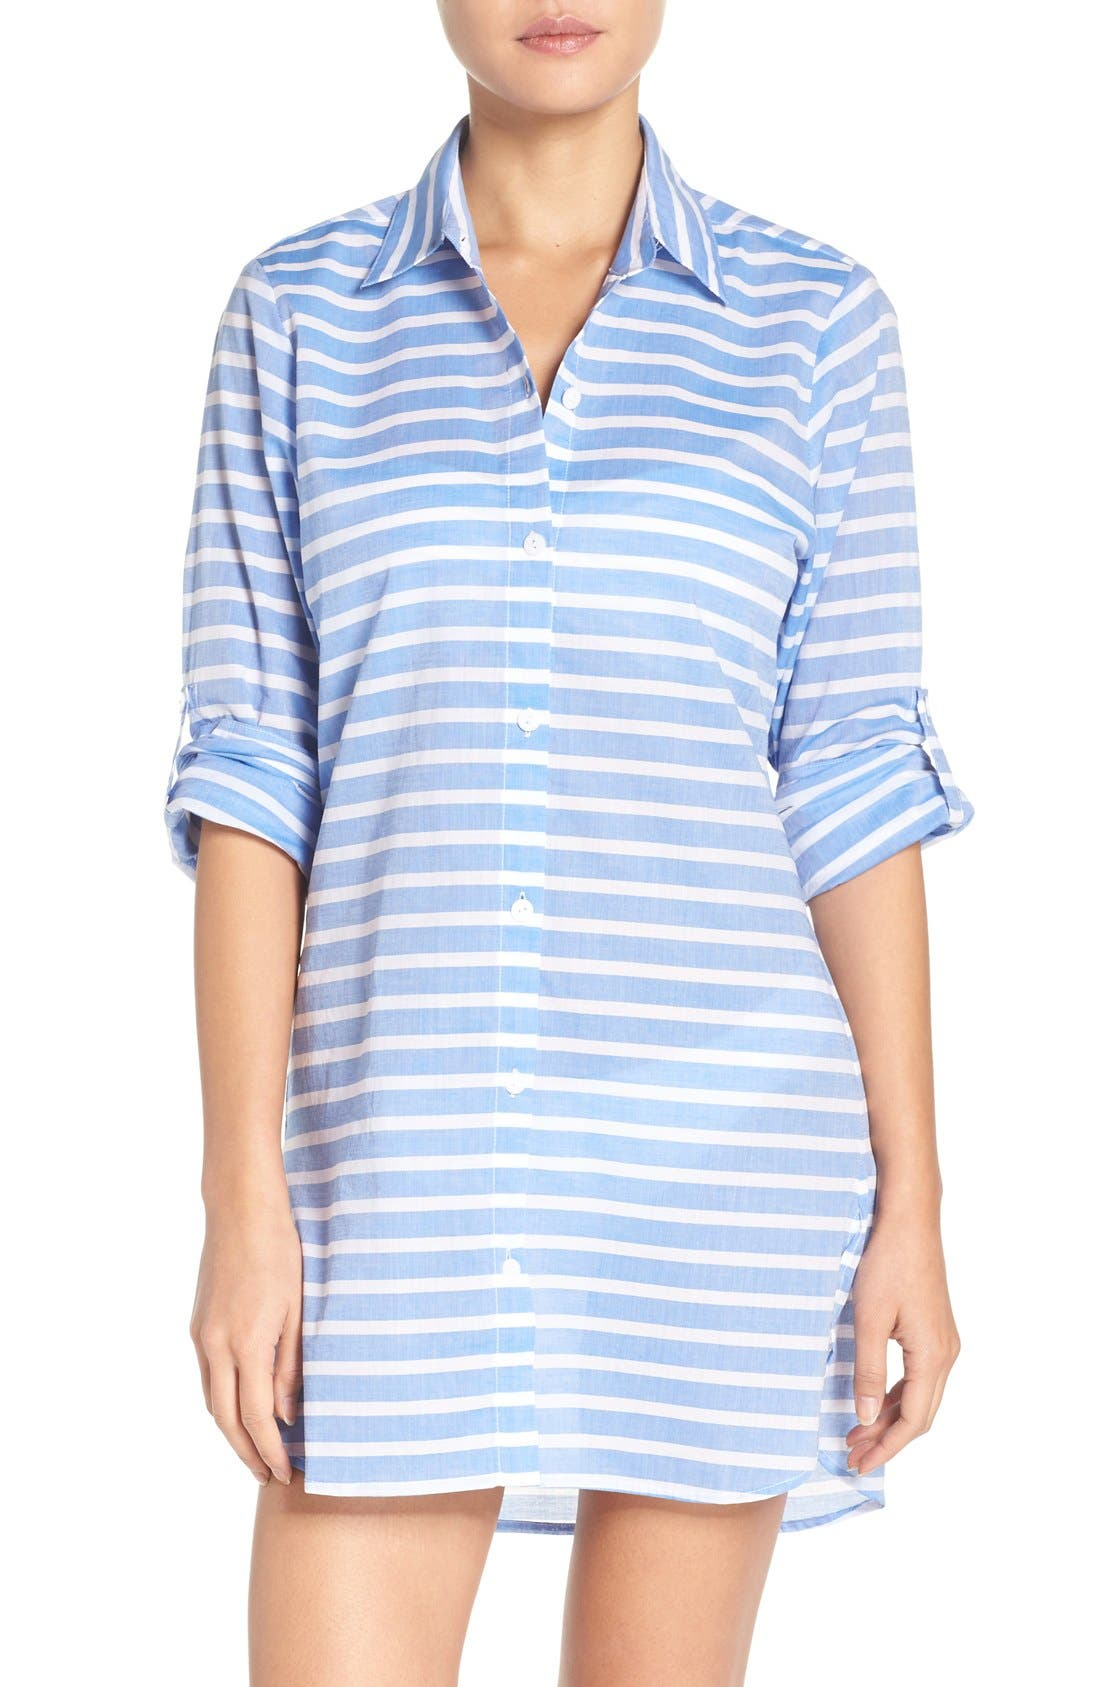 Alternate Image 1 Selected - Tommy Bahama Brenton Stripe Boyfriend Shirt Cover-Up